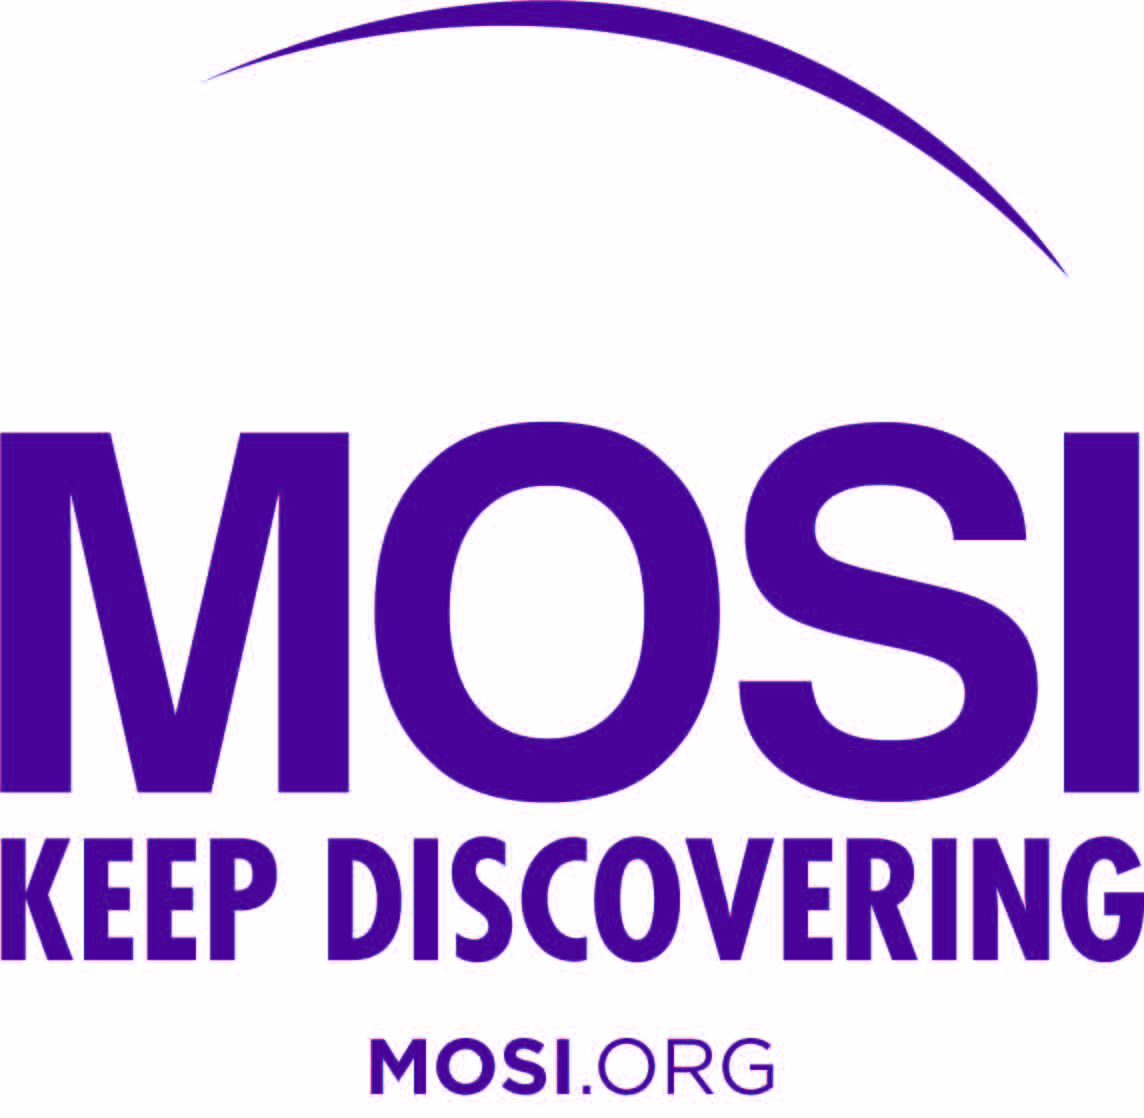 A special thanks to MOSI (Museum of Science and Industry in Tampa, FL) for sponsoring this station in the Wesley Chapel Museum -